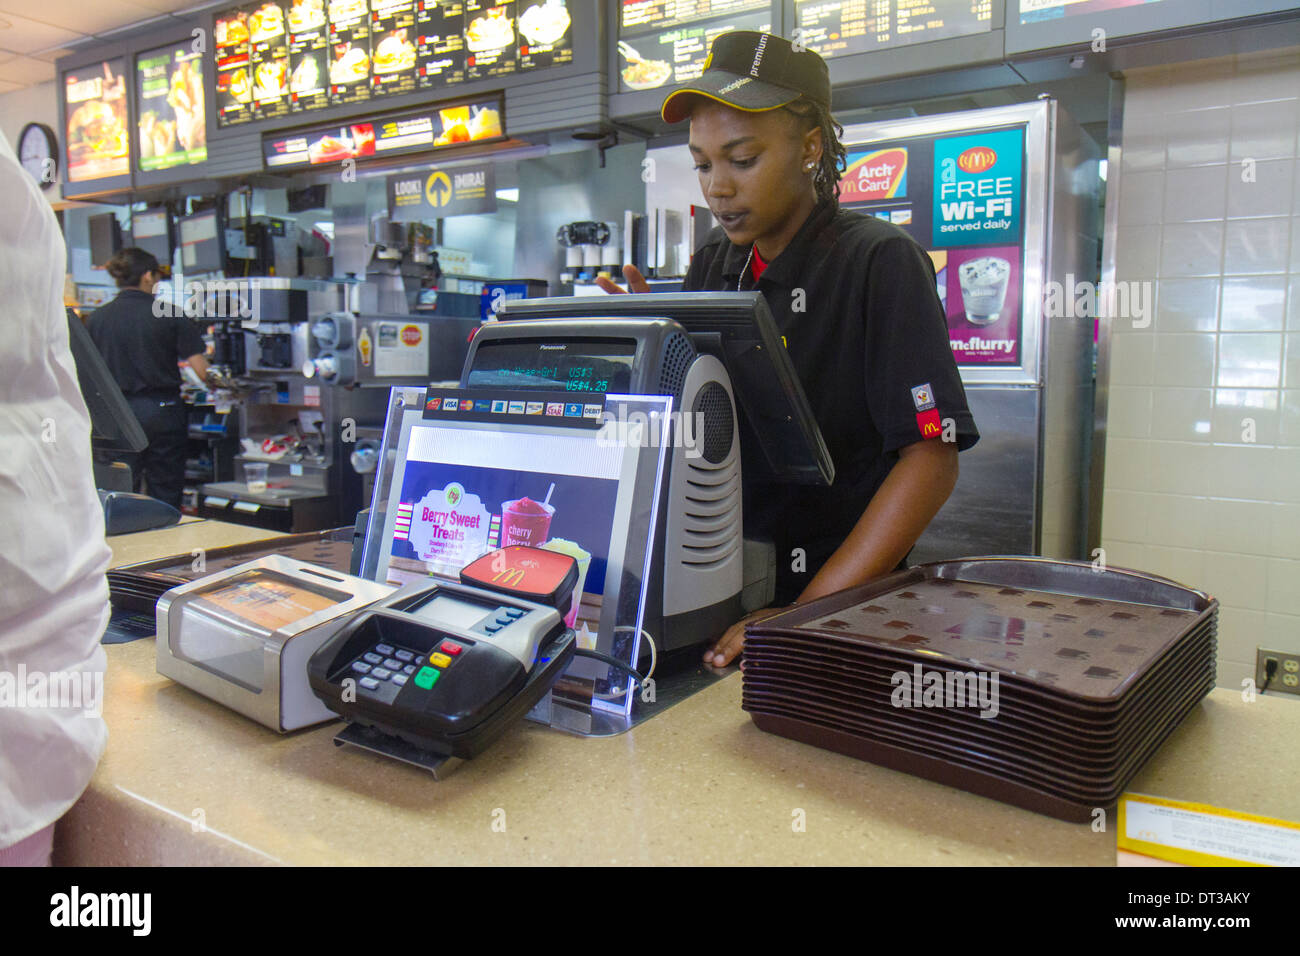 Florida Fort Pierce SR70 McDonald restaurant business fast food hamburger chain counter Black girl teen worker cashier job unif - Stock Image